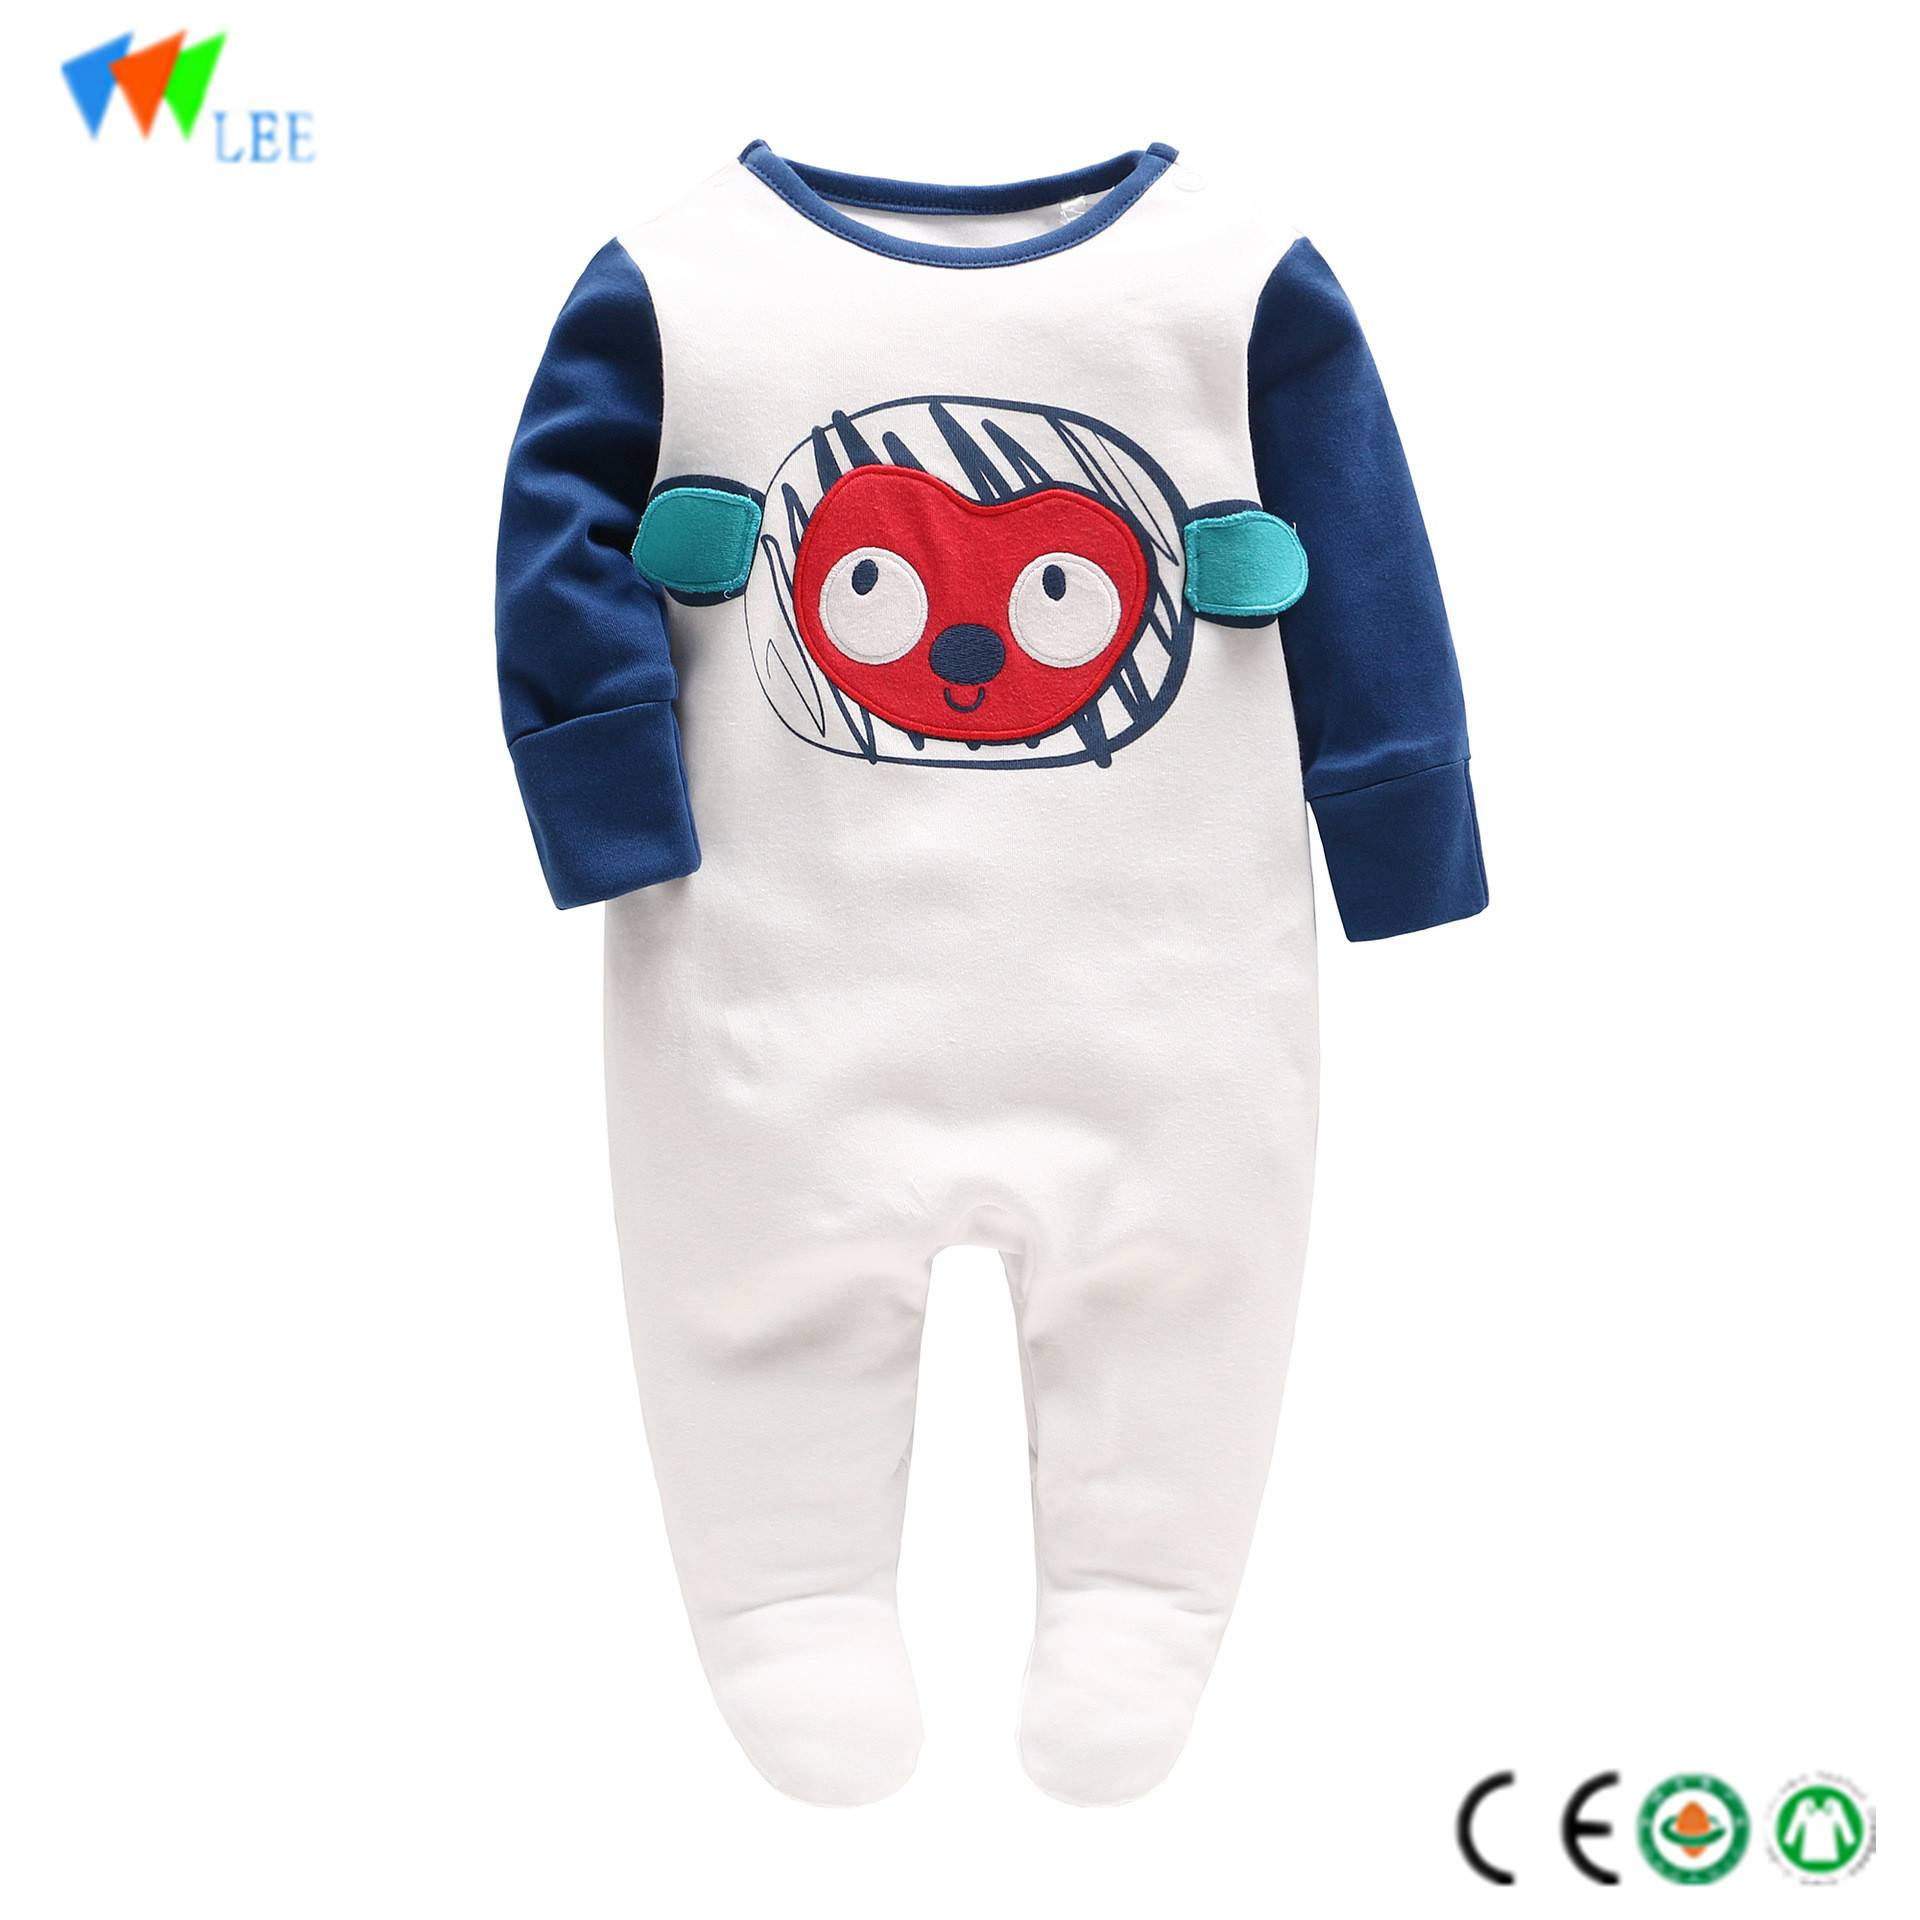 New style wholesale & OEM high quality cotton baby boy romper embroidered